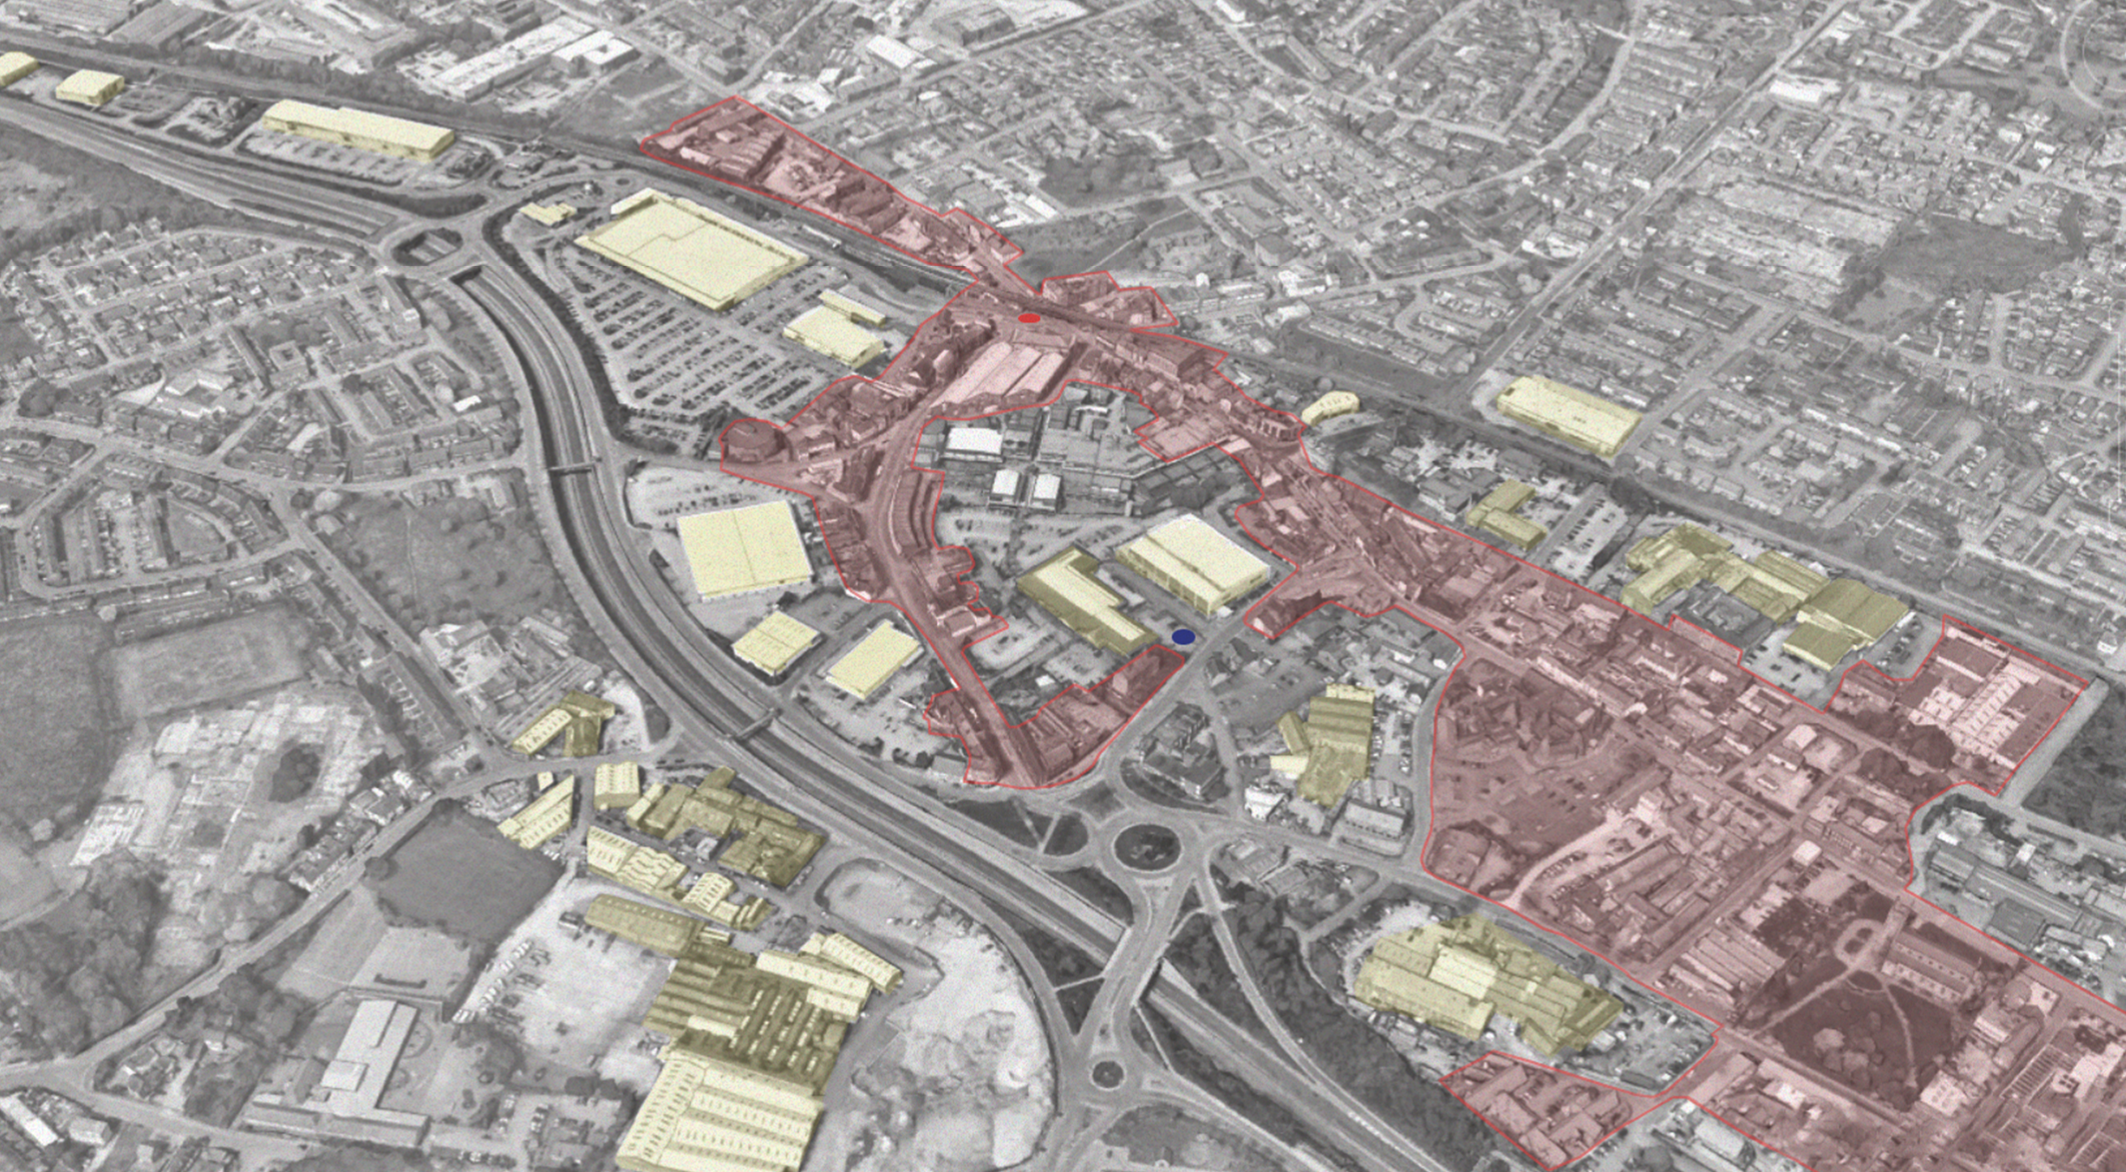 Overview of Longton showing the Conservation Area (red) and the ubiquitous presence of the Pre-fabricated Steel Buildings (yellow)